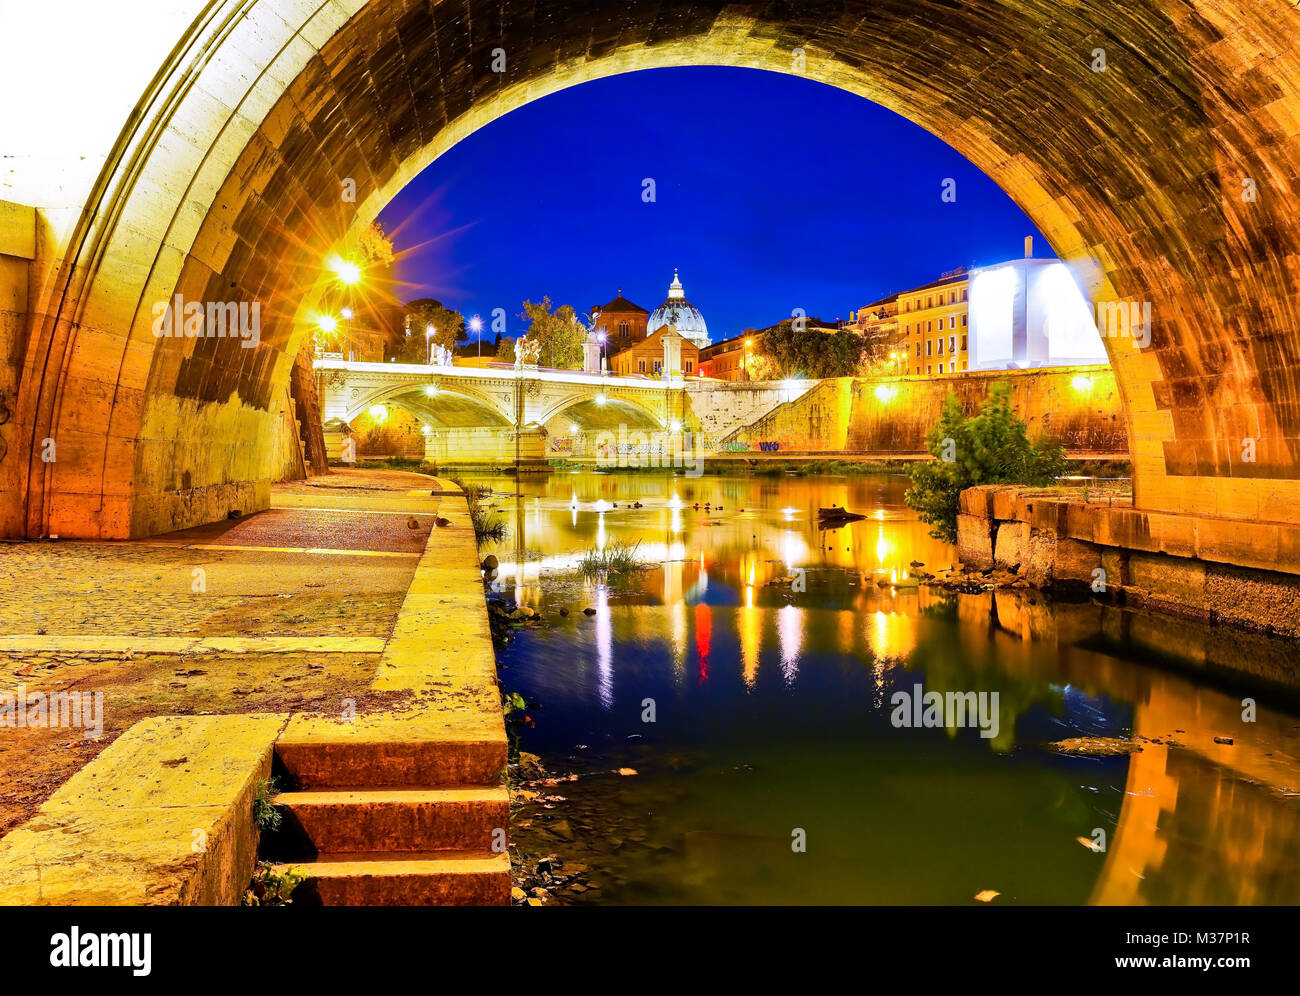 View of St. Peter's Basilica from Aelian Bridge in Rome at night. - Stock Image